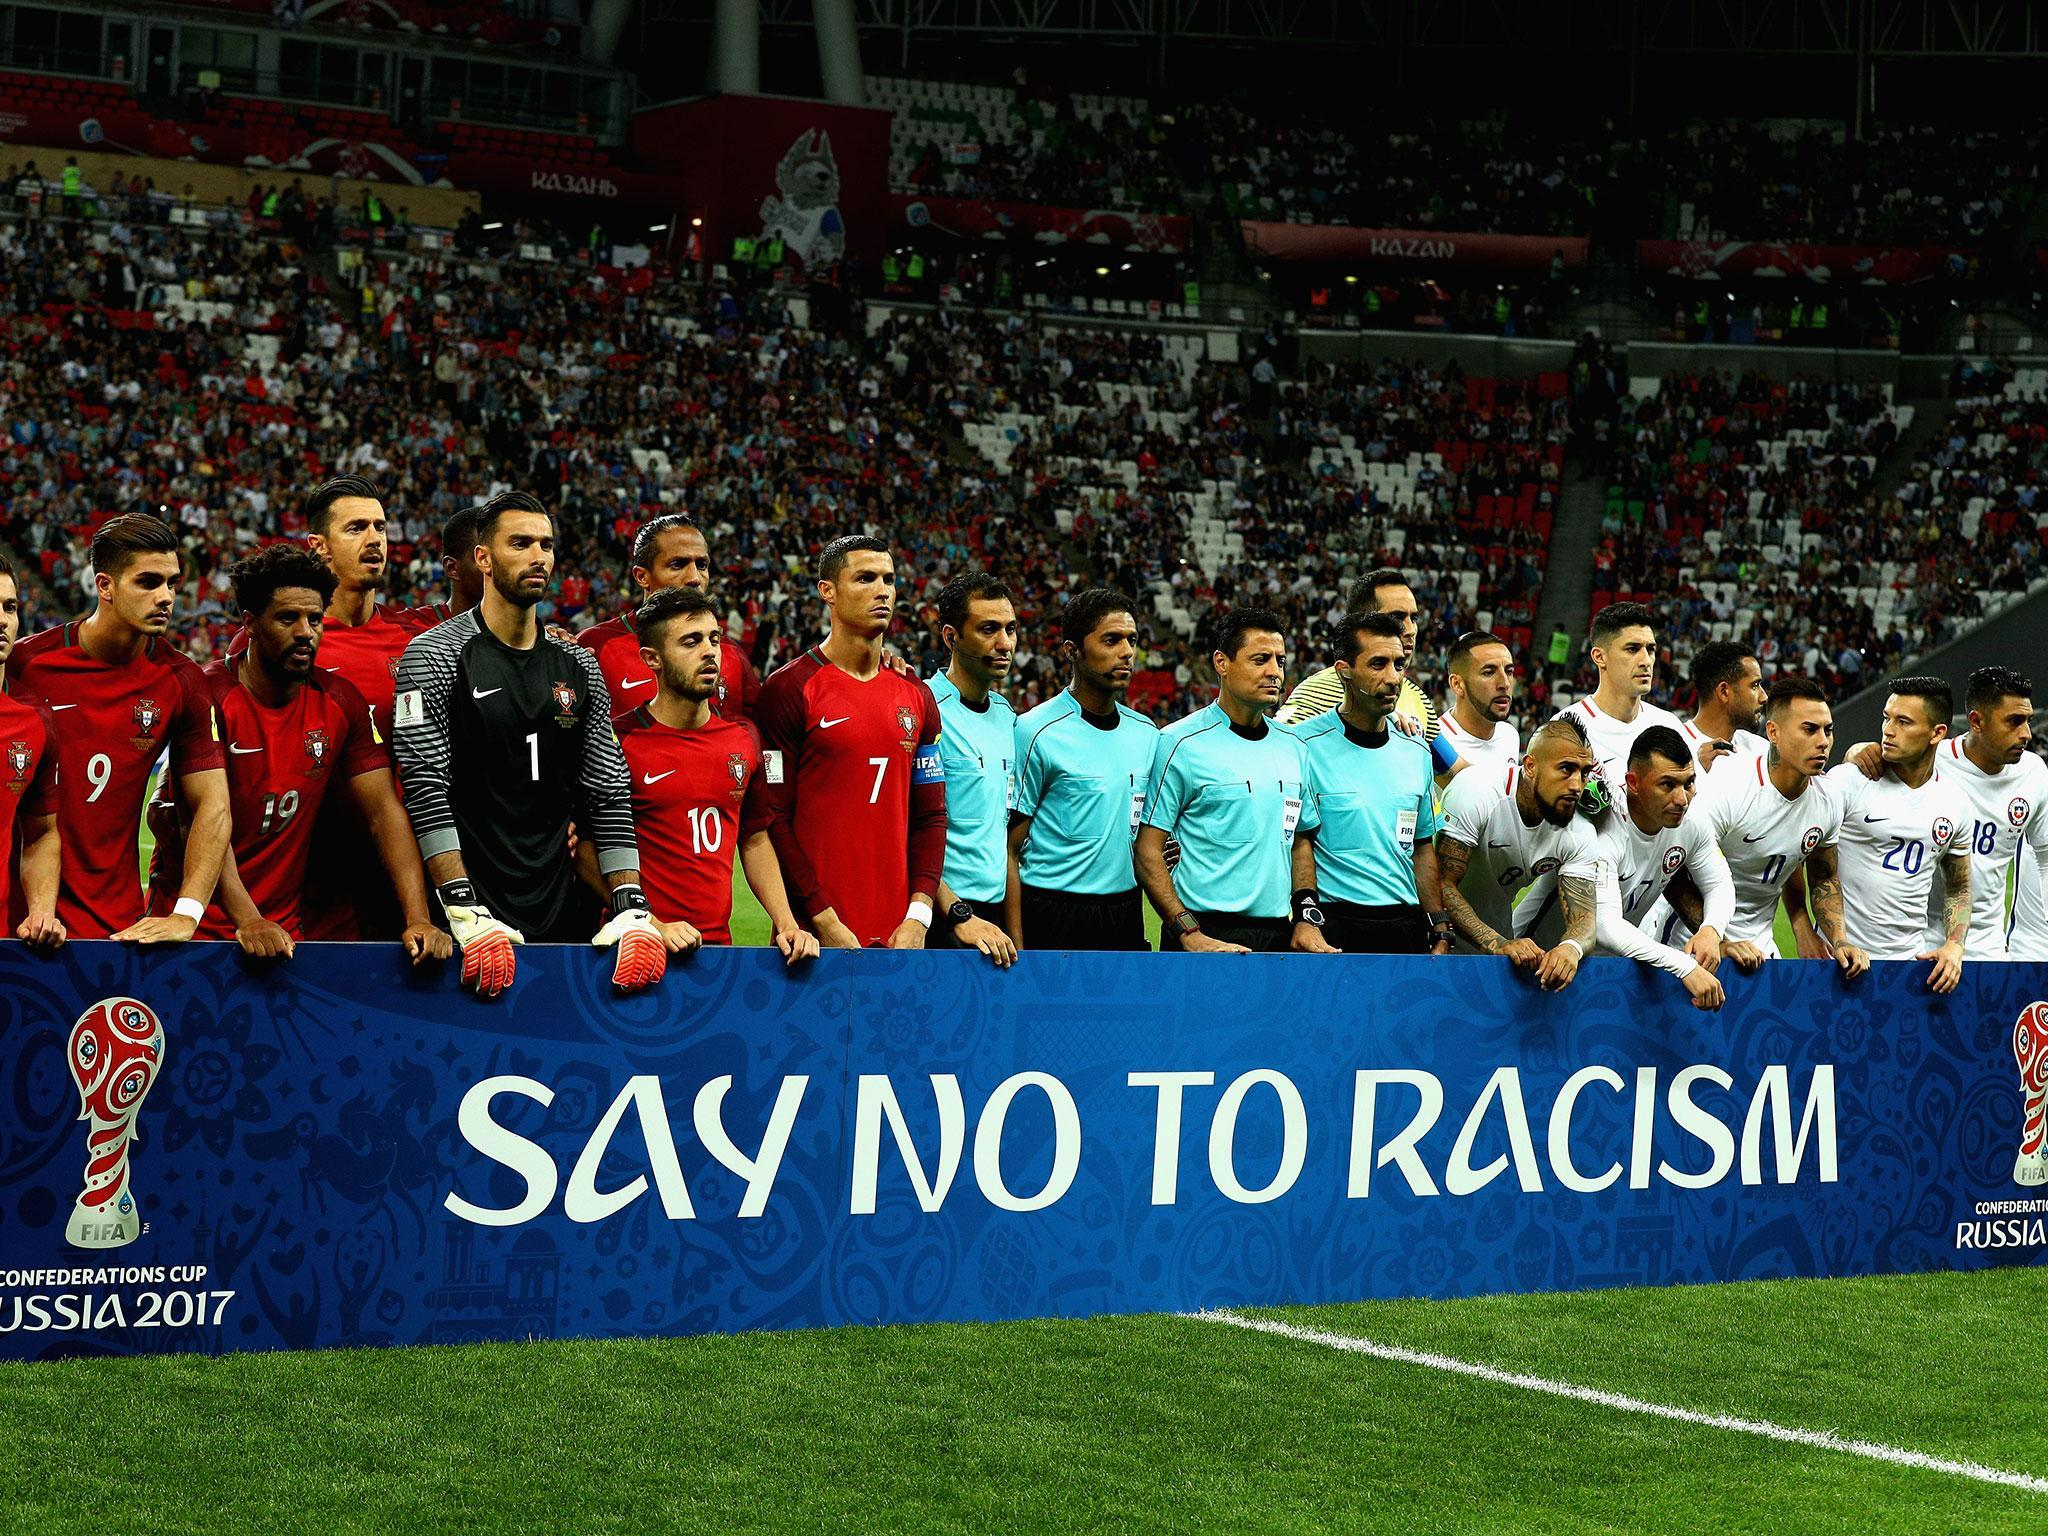 discrimination and racism in the world of sports Sexism has been a bigger problem than racism at the world cup in russia,  sports sports  sexism bigger problem than racism at world cup, anti-discrimination.